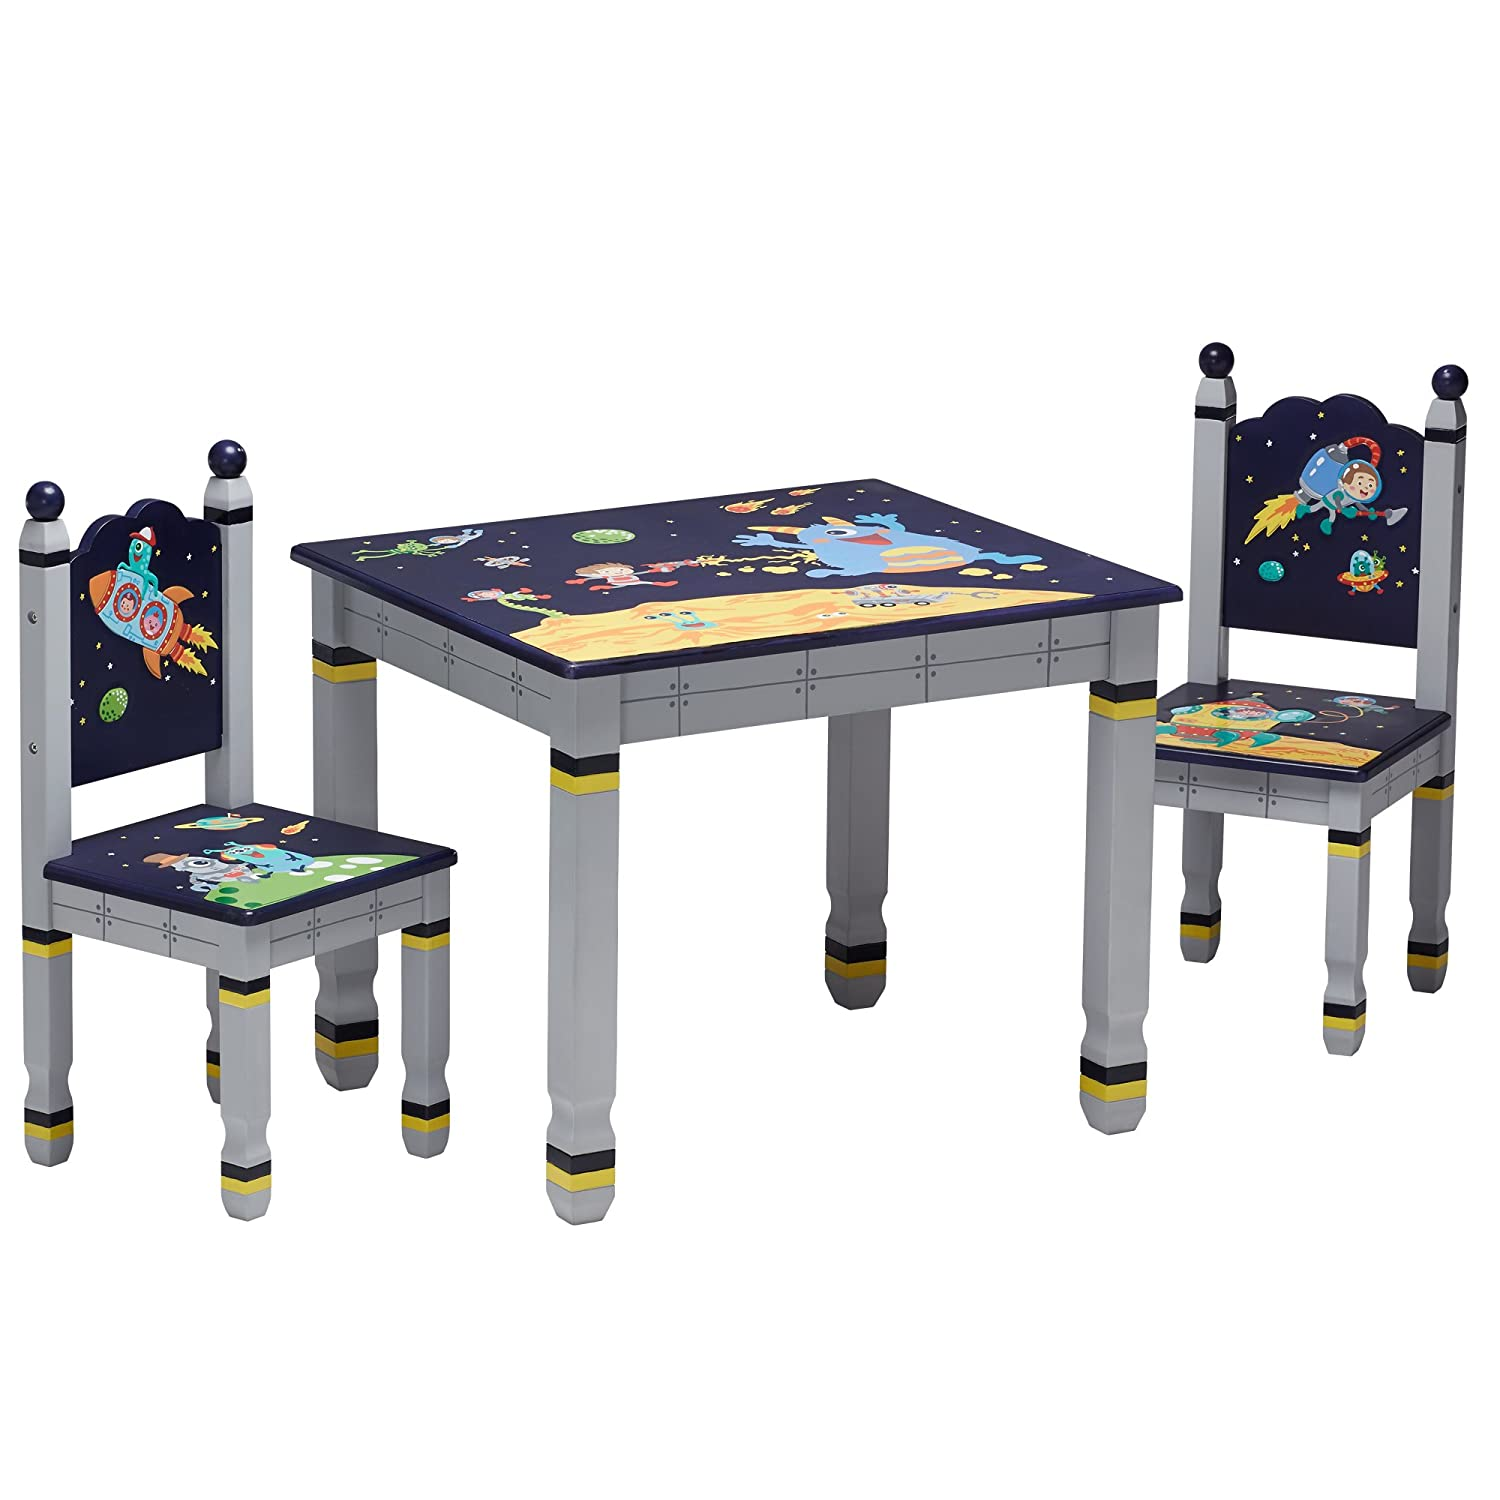 Fantasy Fields Bouquet Thematic Hand Crafted Kids Wooden Table and 2 Chairs Set |Imagination Inspiring Hand Crafted & Hand Painted Details Non-Toxic, Lead Free Water-based Paint TD-0046A